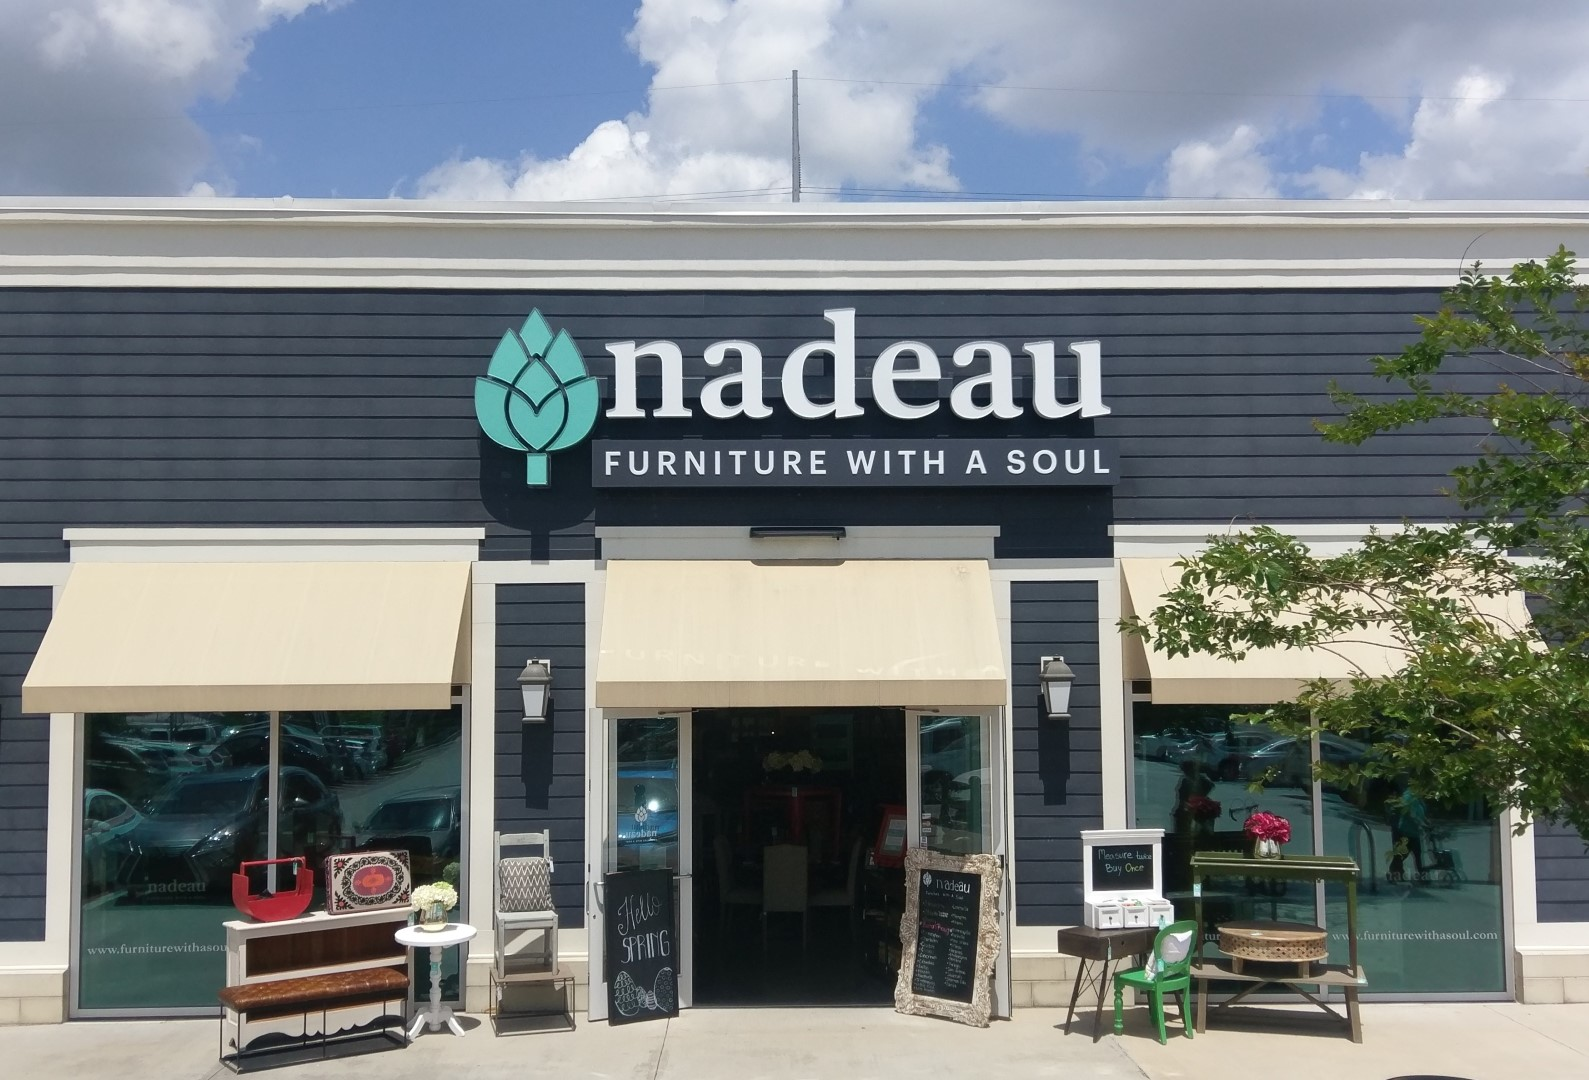 Furniture Store Baton Rouge La Nadeau Unique Affordable